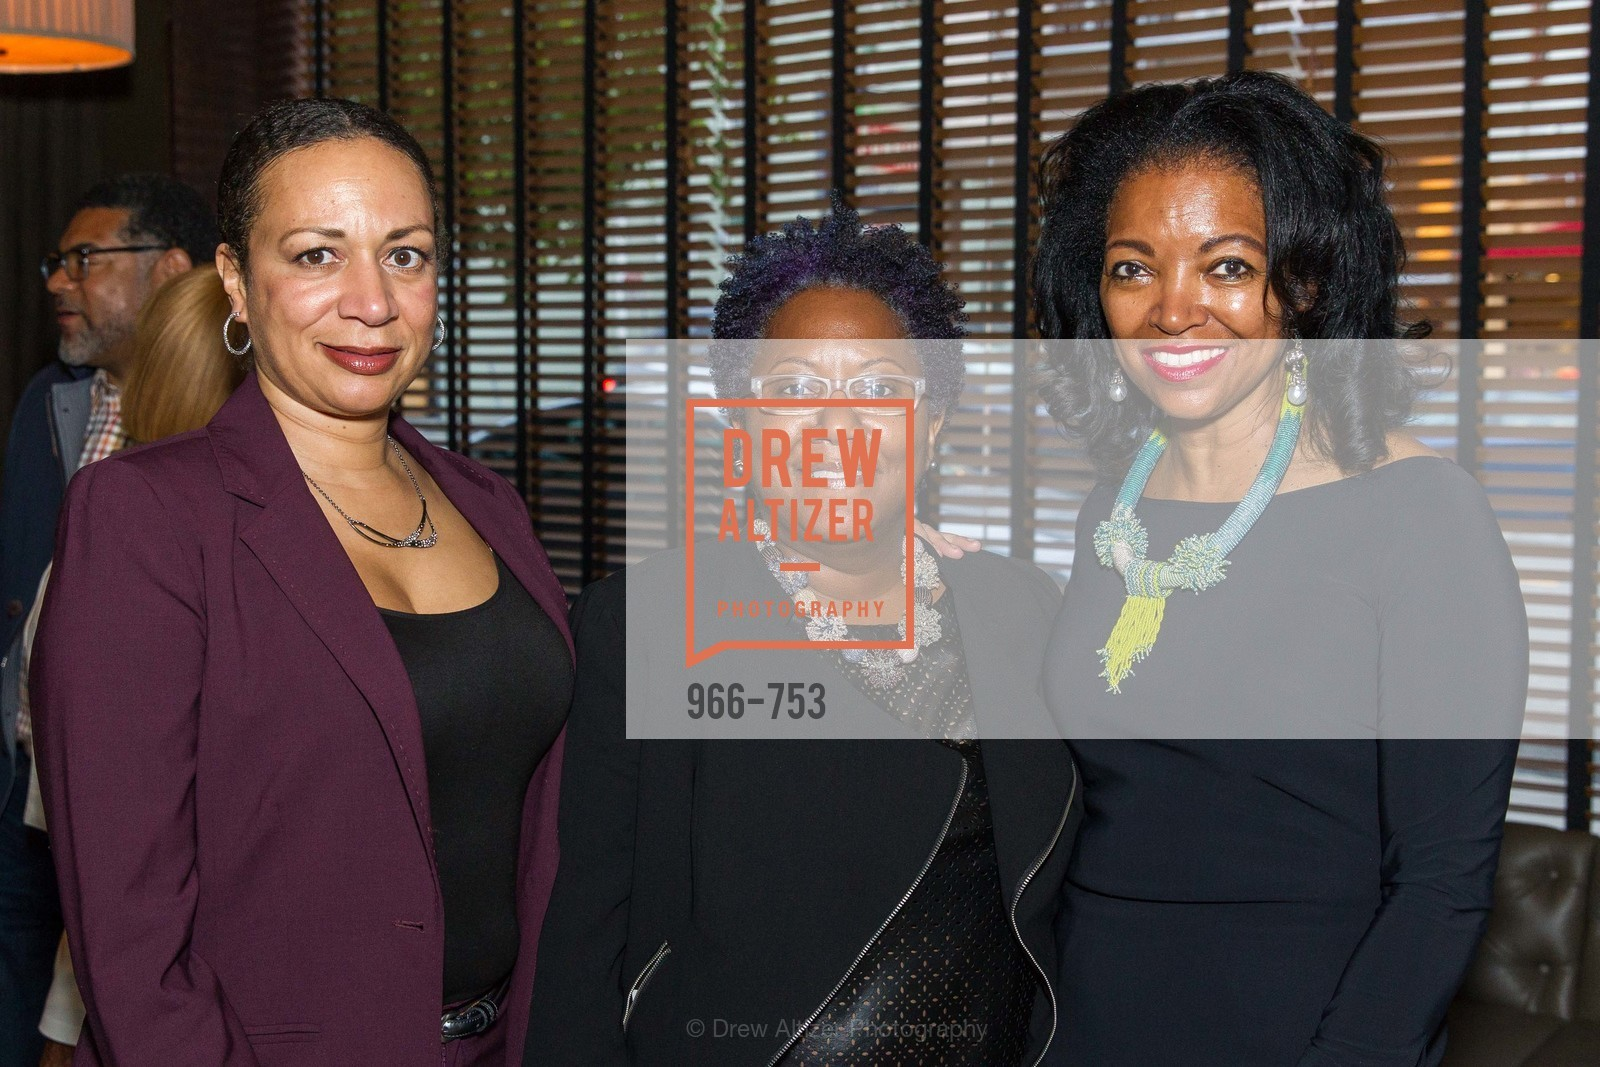 Dierdre Levington, Joyce Dyson, Denise Bradley Tyson, INSPIRED LUXE Launch Party Hosted by Denise Bradley Tyson, US, May 28th, 2015,Drew Altizer, Drew Altizer Photography, full-service agency, private events, San Francisco photographer, photographer california